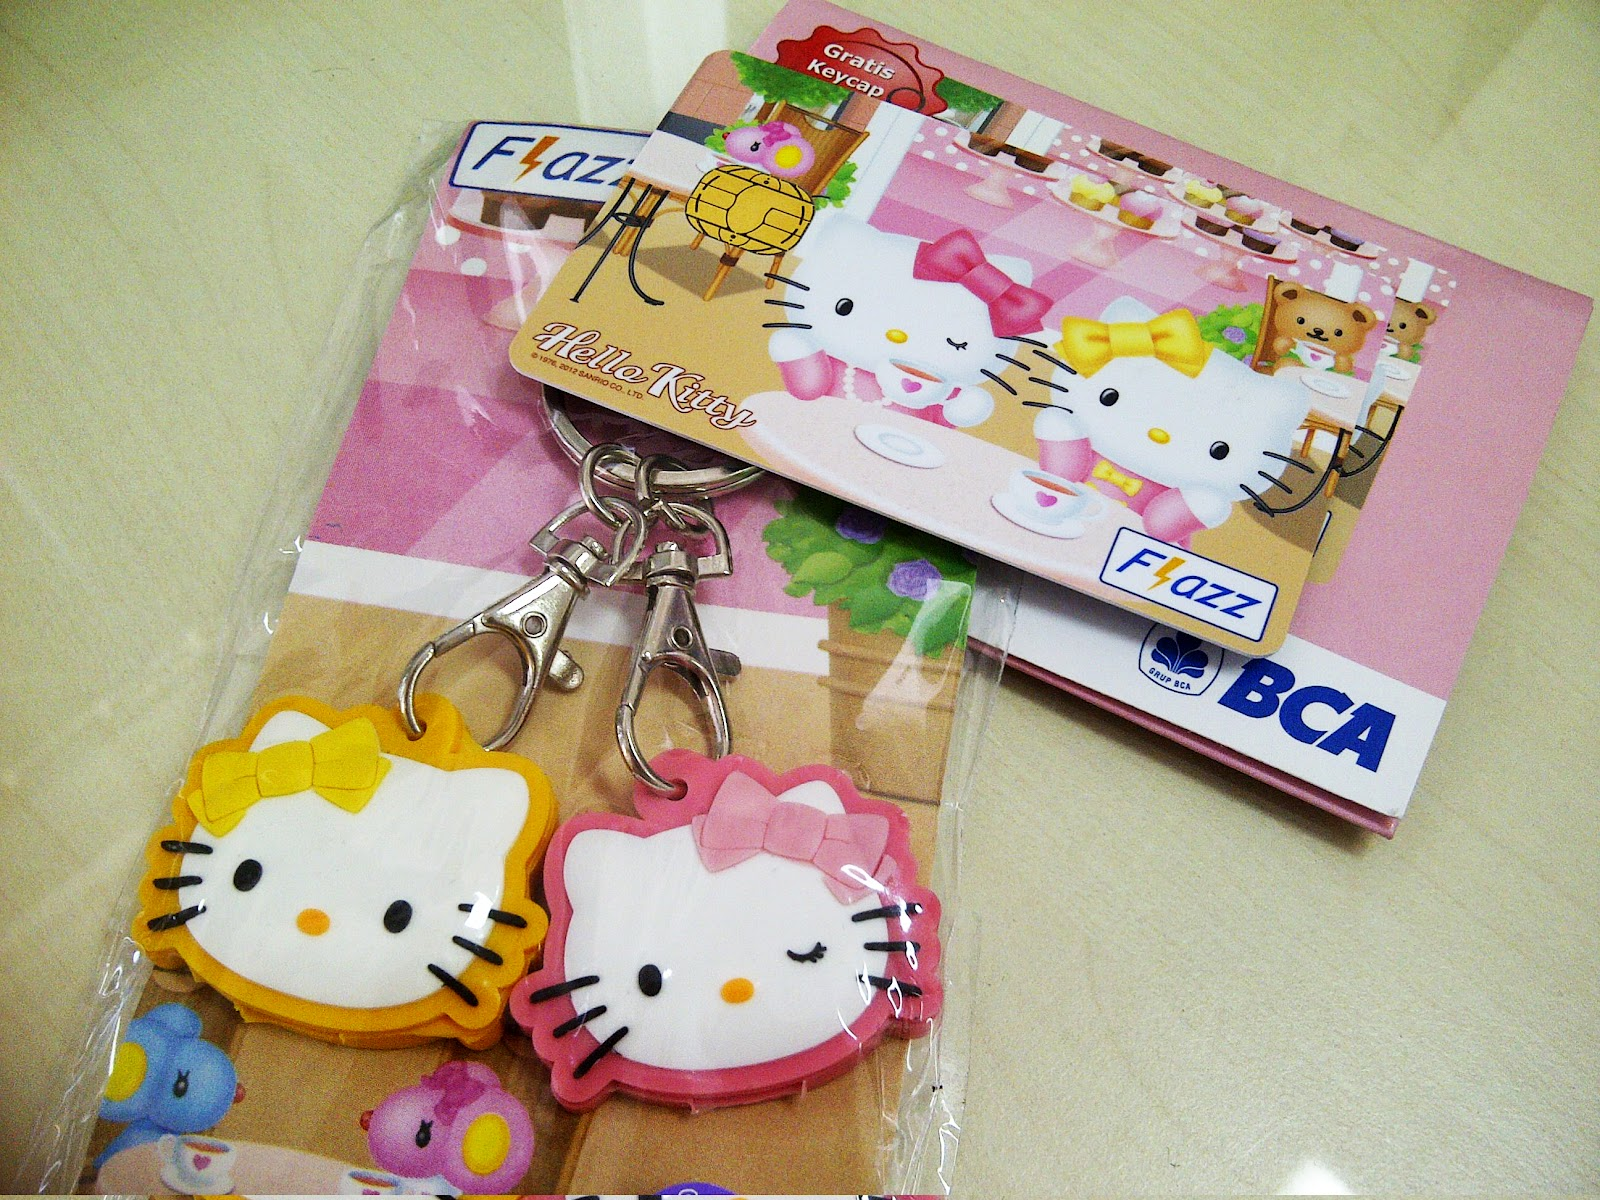 Bca Flazz Hello Kitty Limited Edition Love Life Card Finally I Got The Jumping